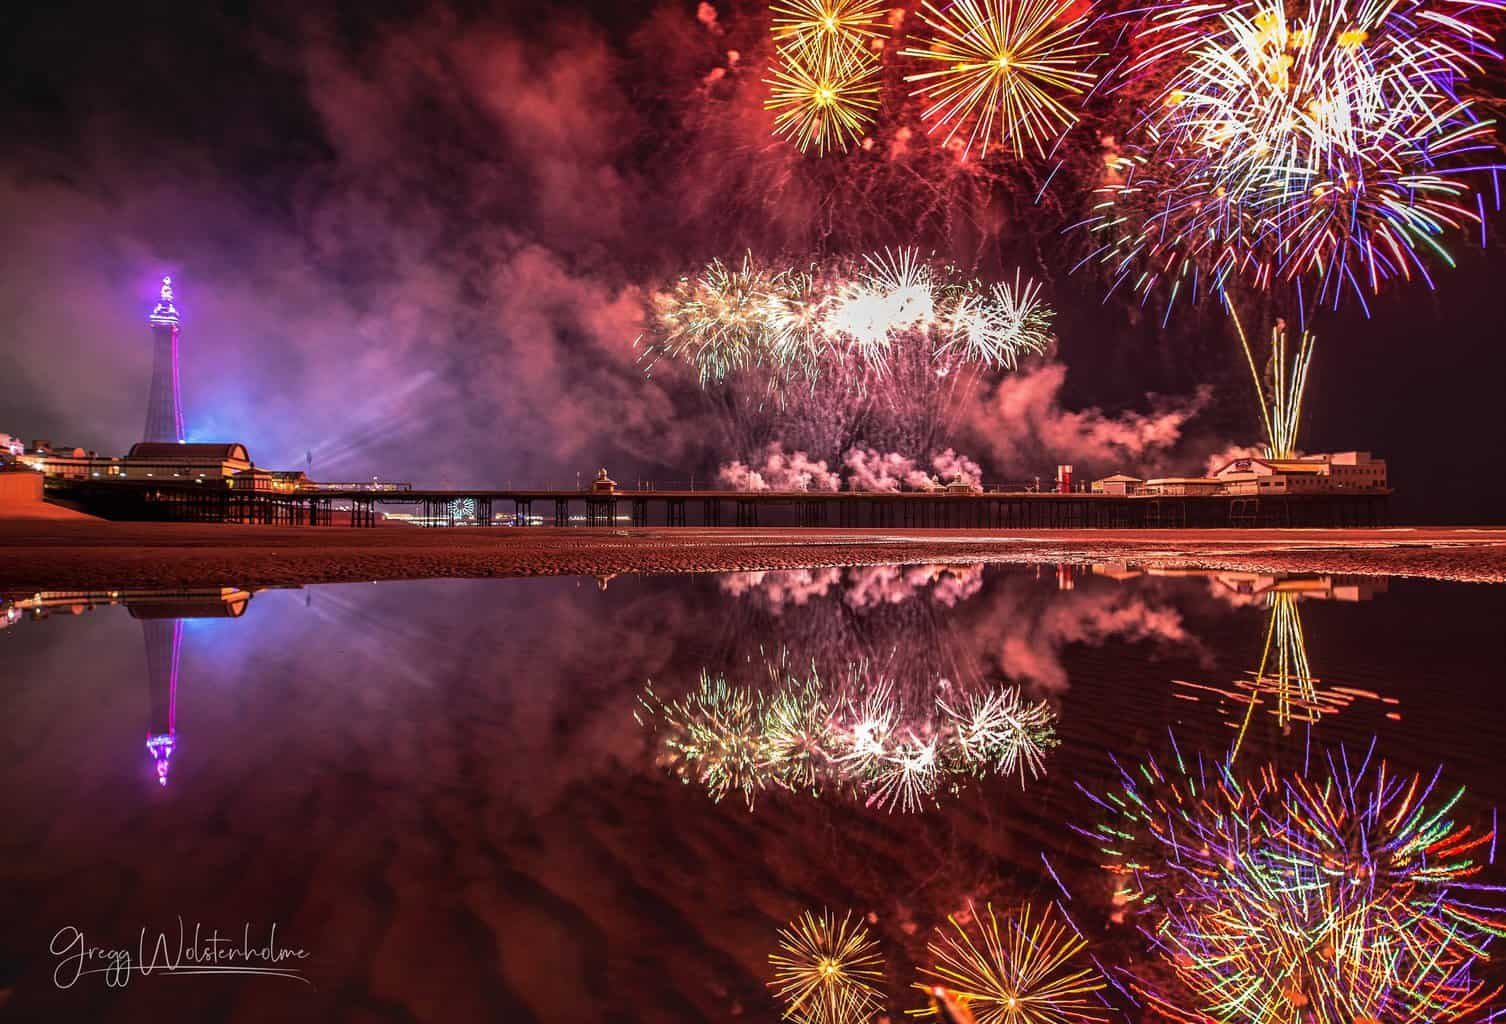 Annual Fireworks Championship CANCELLED due to Coronavirus Fears